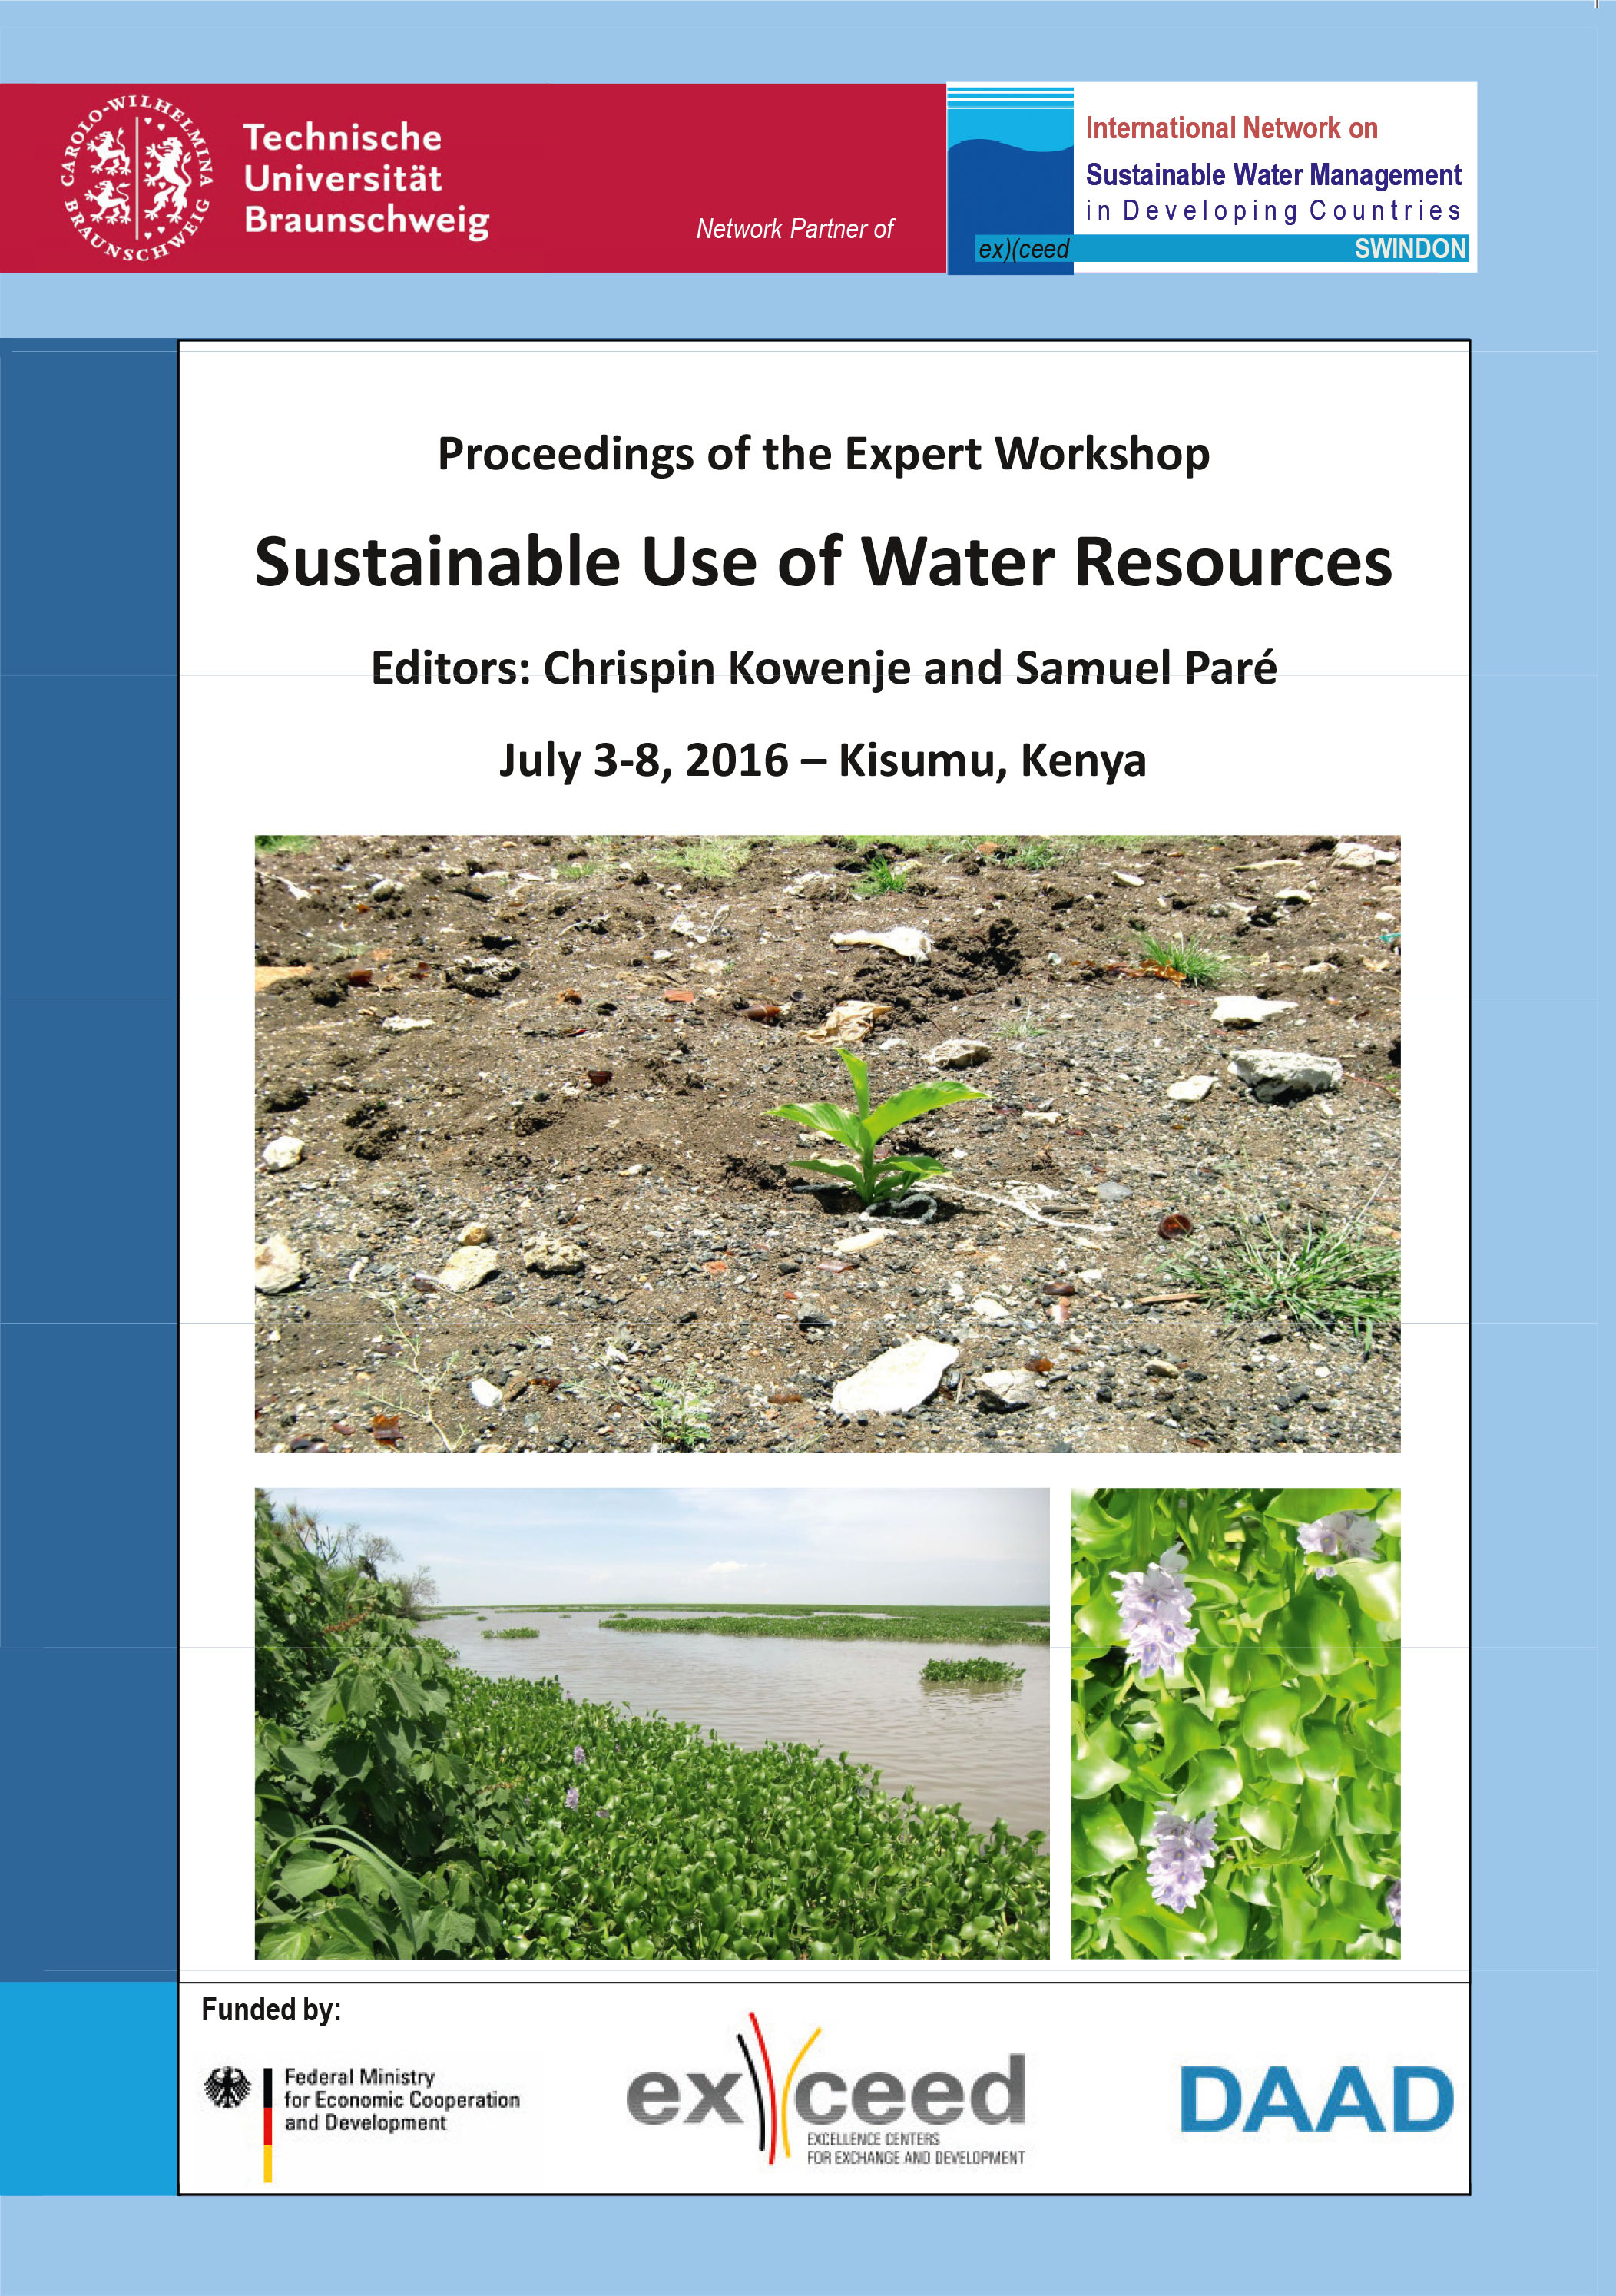 Sustainable Use of Water Resources